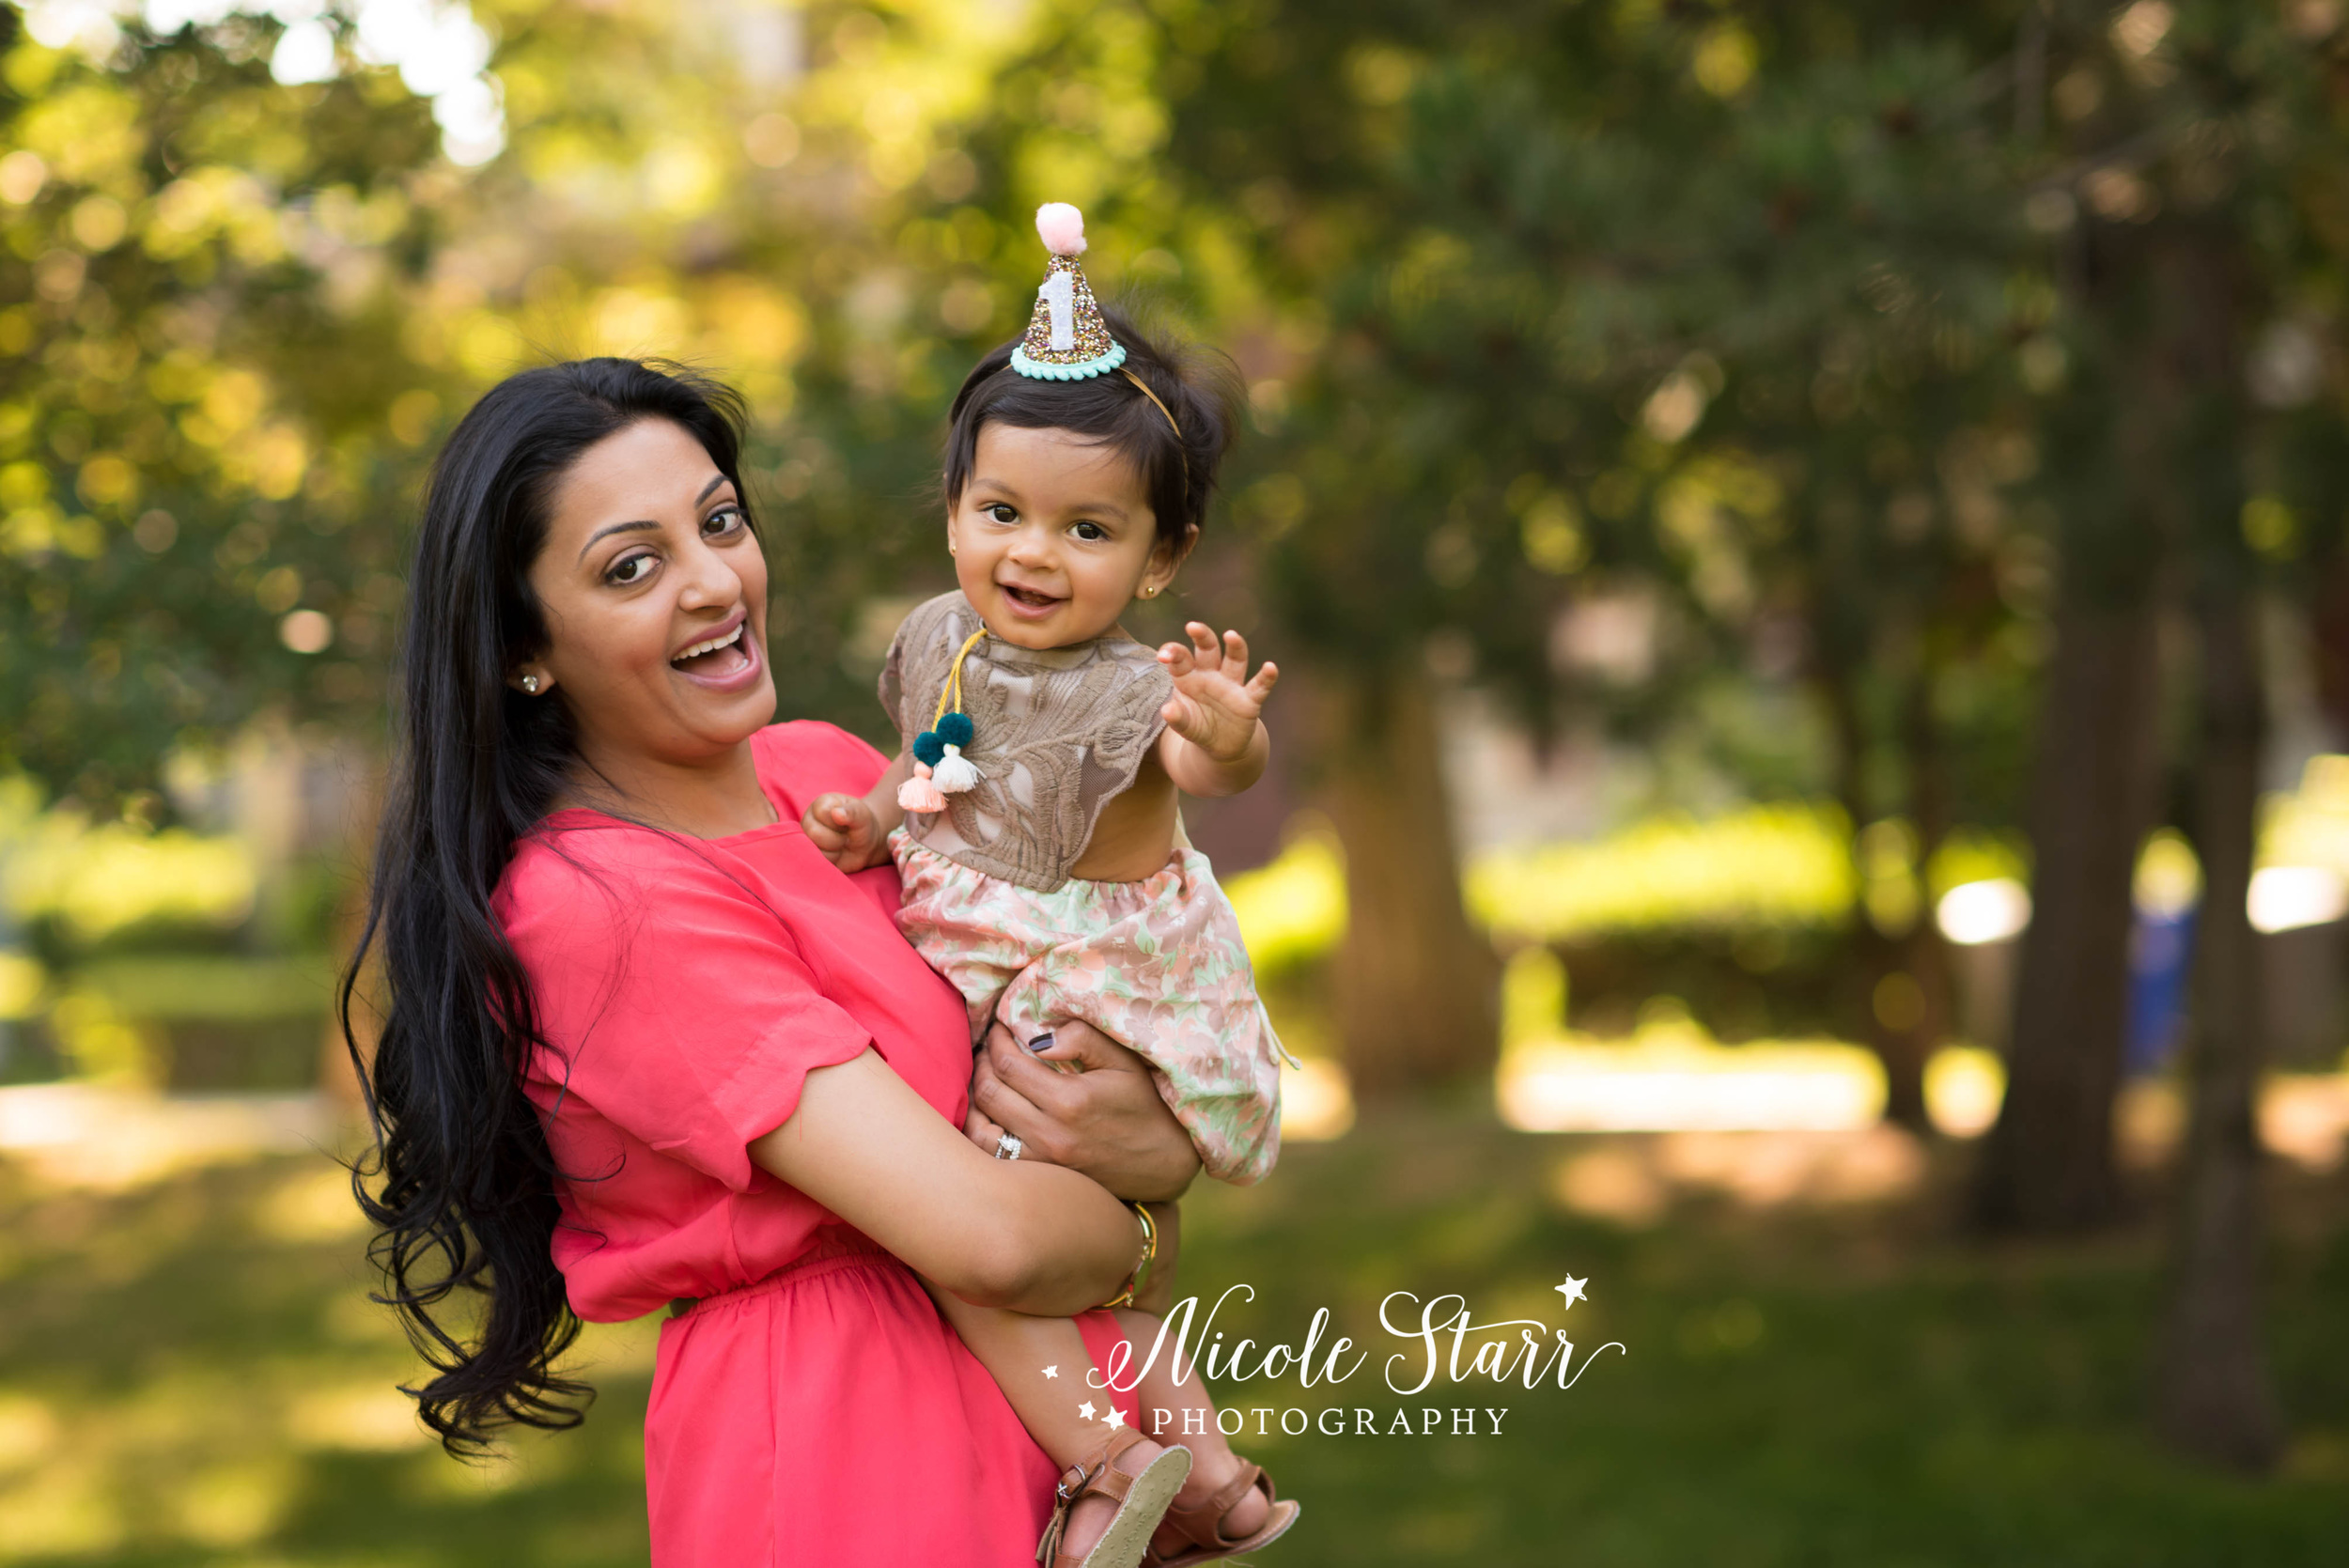 WM nicole starr photography-7.jpg